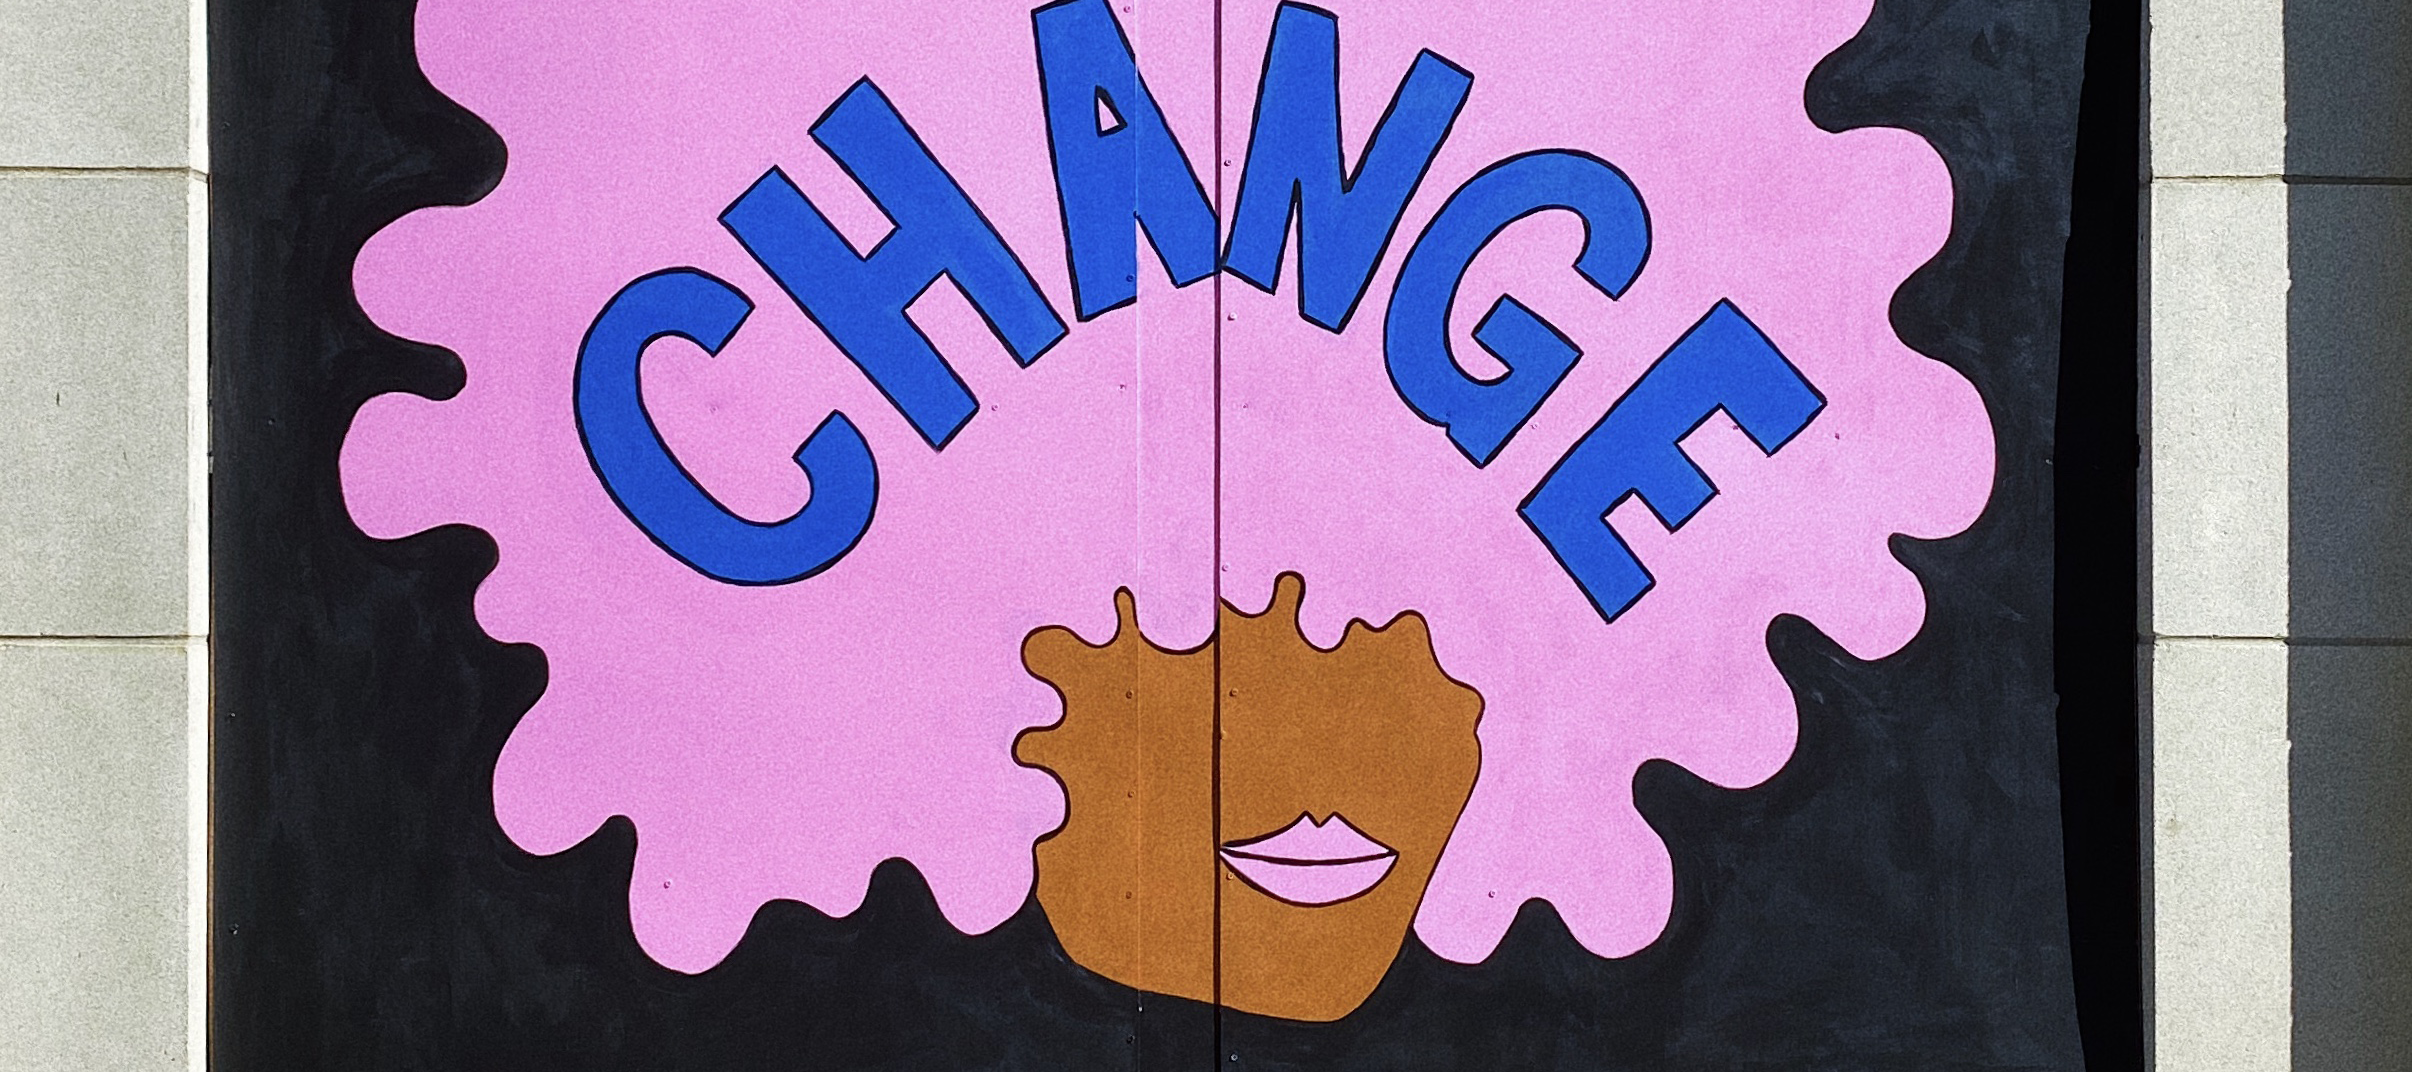 A plywood mural of a dark-skinned face with a bubblegum pink afro and matching, full lips, against a black background.